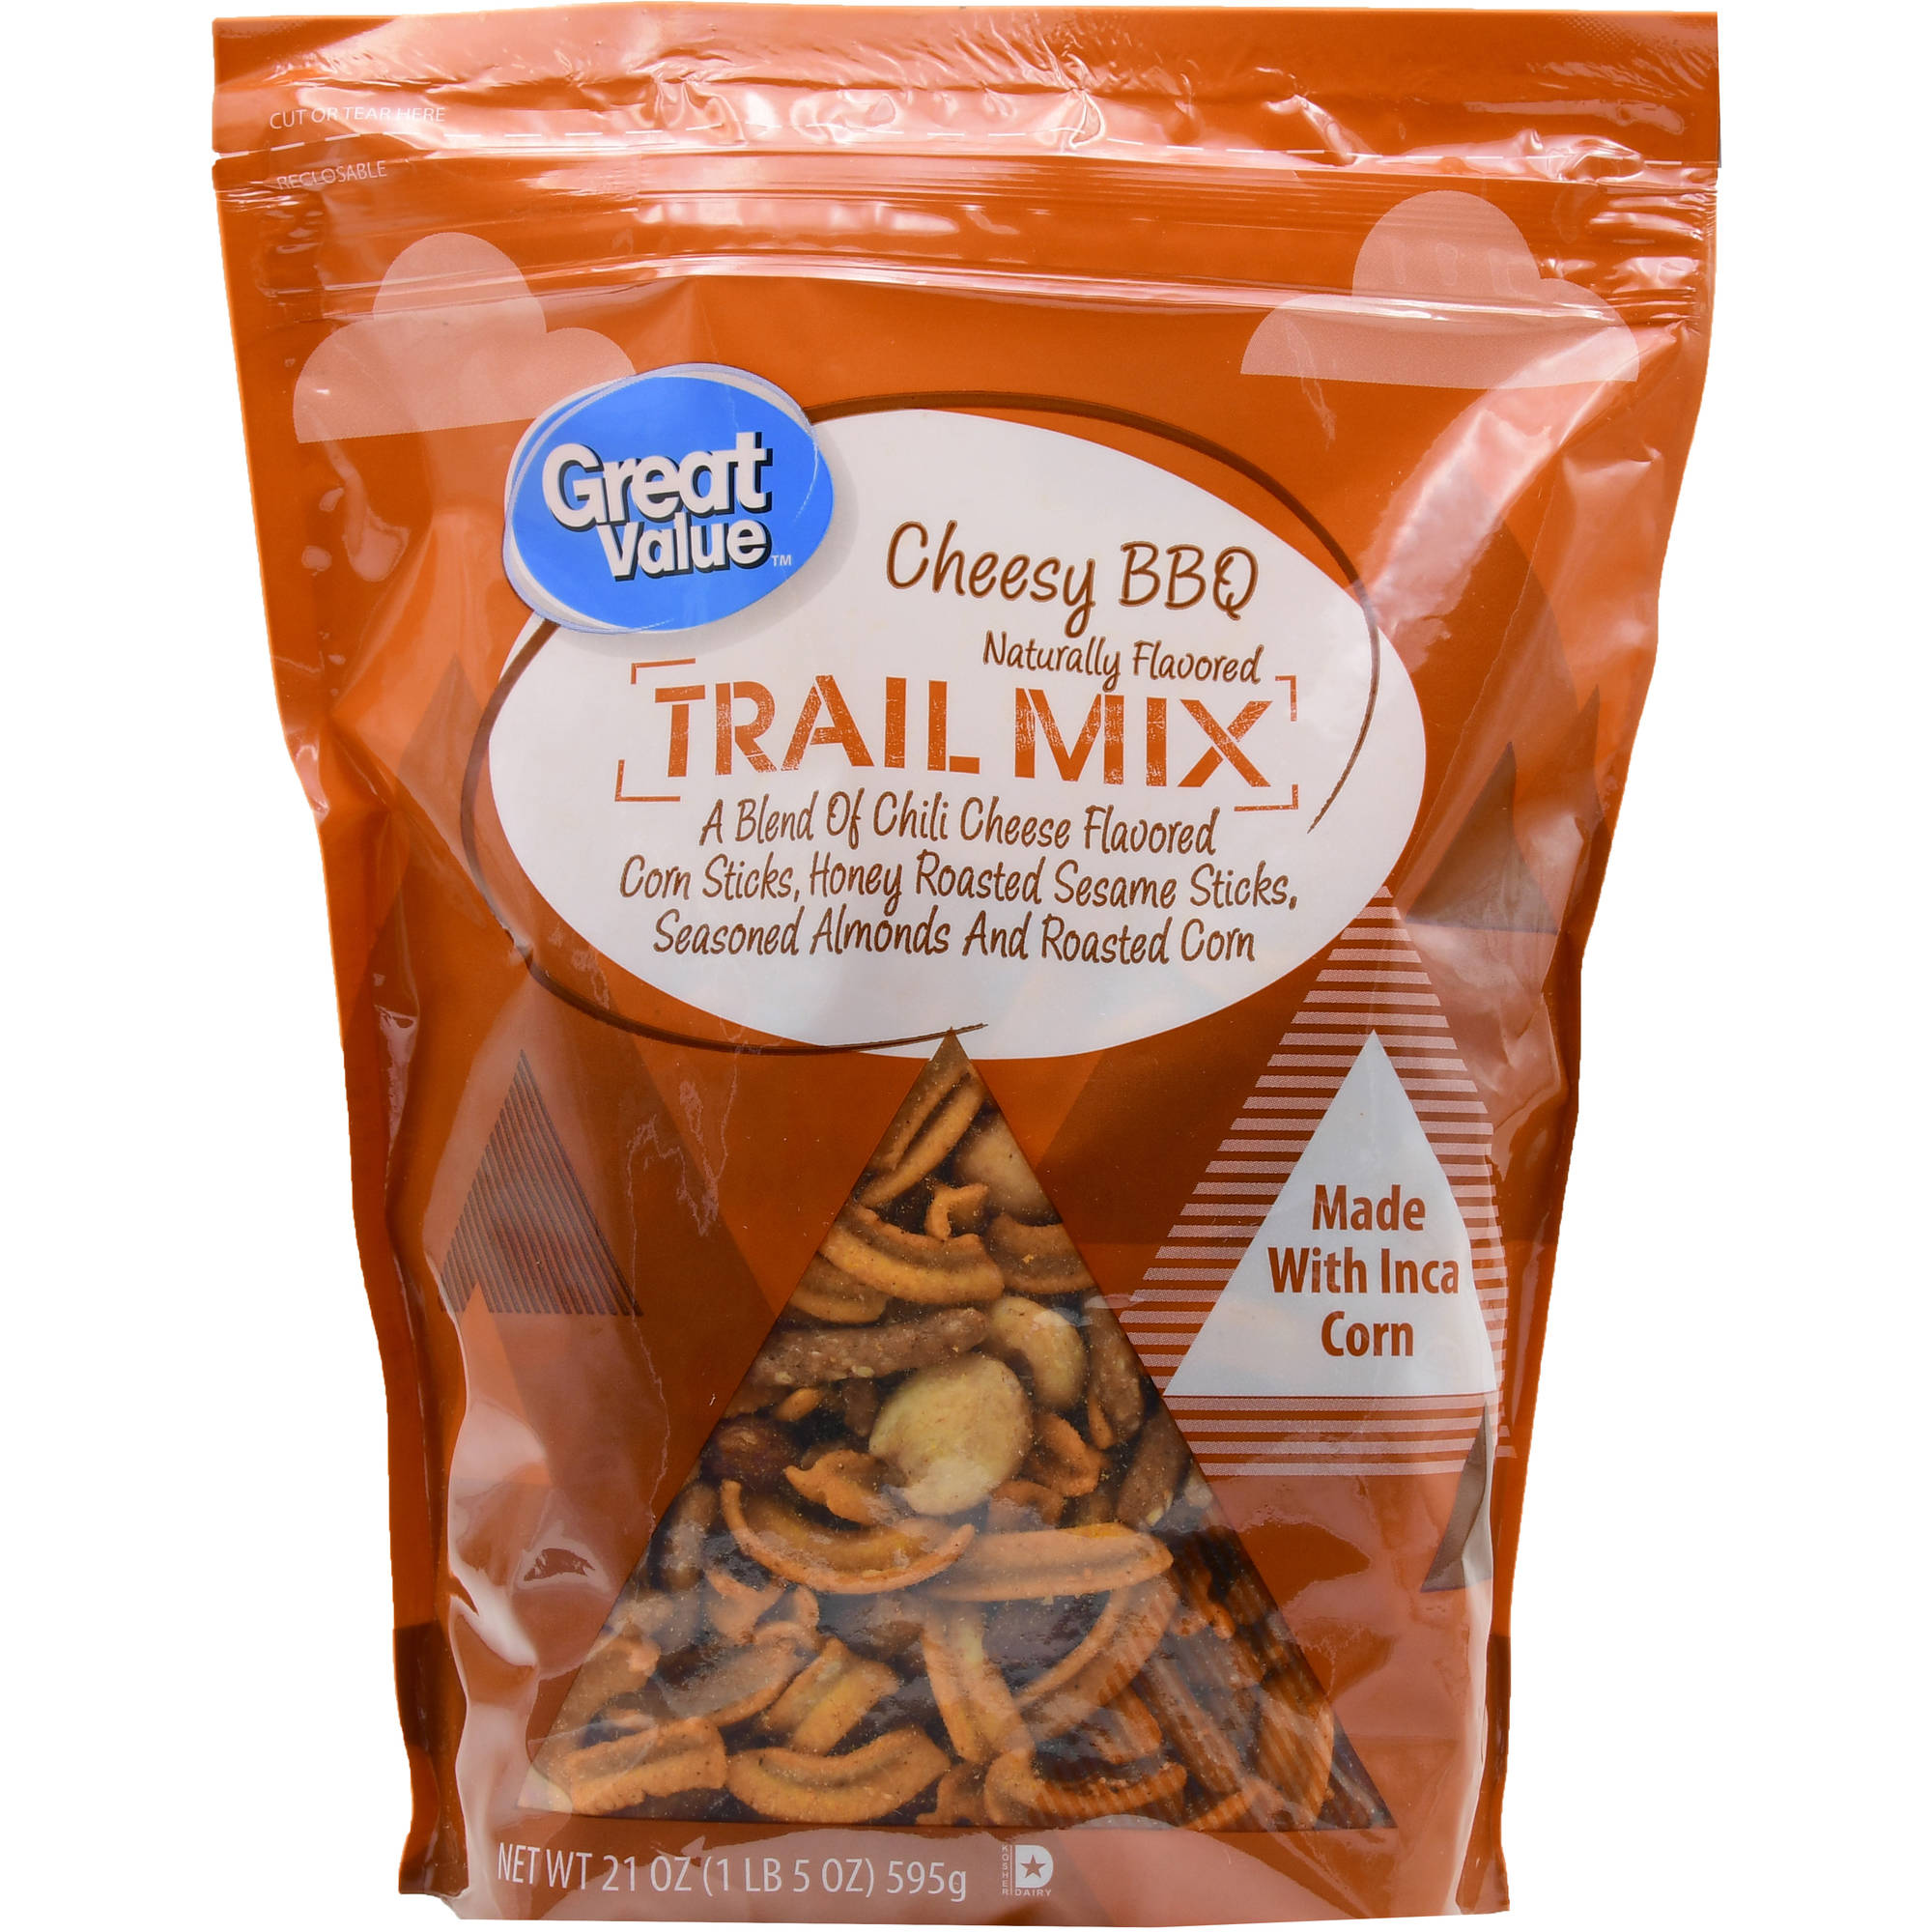 (2 pack) Great Value Trail Mix, Cheesy BBQ, 21 oz